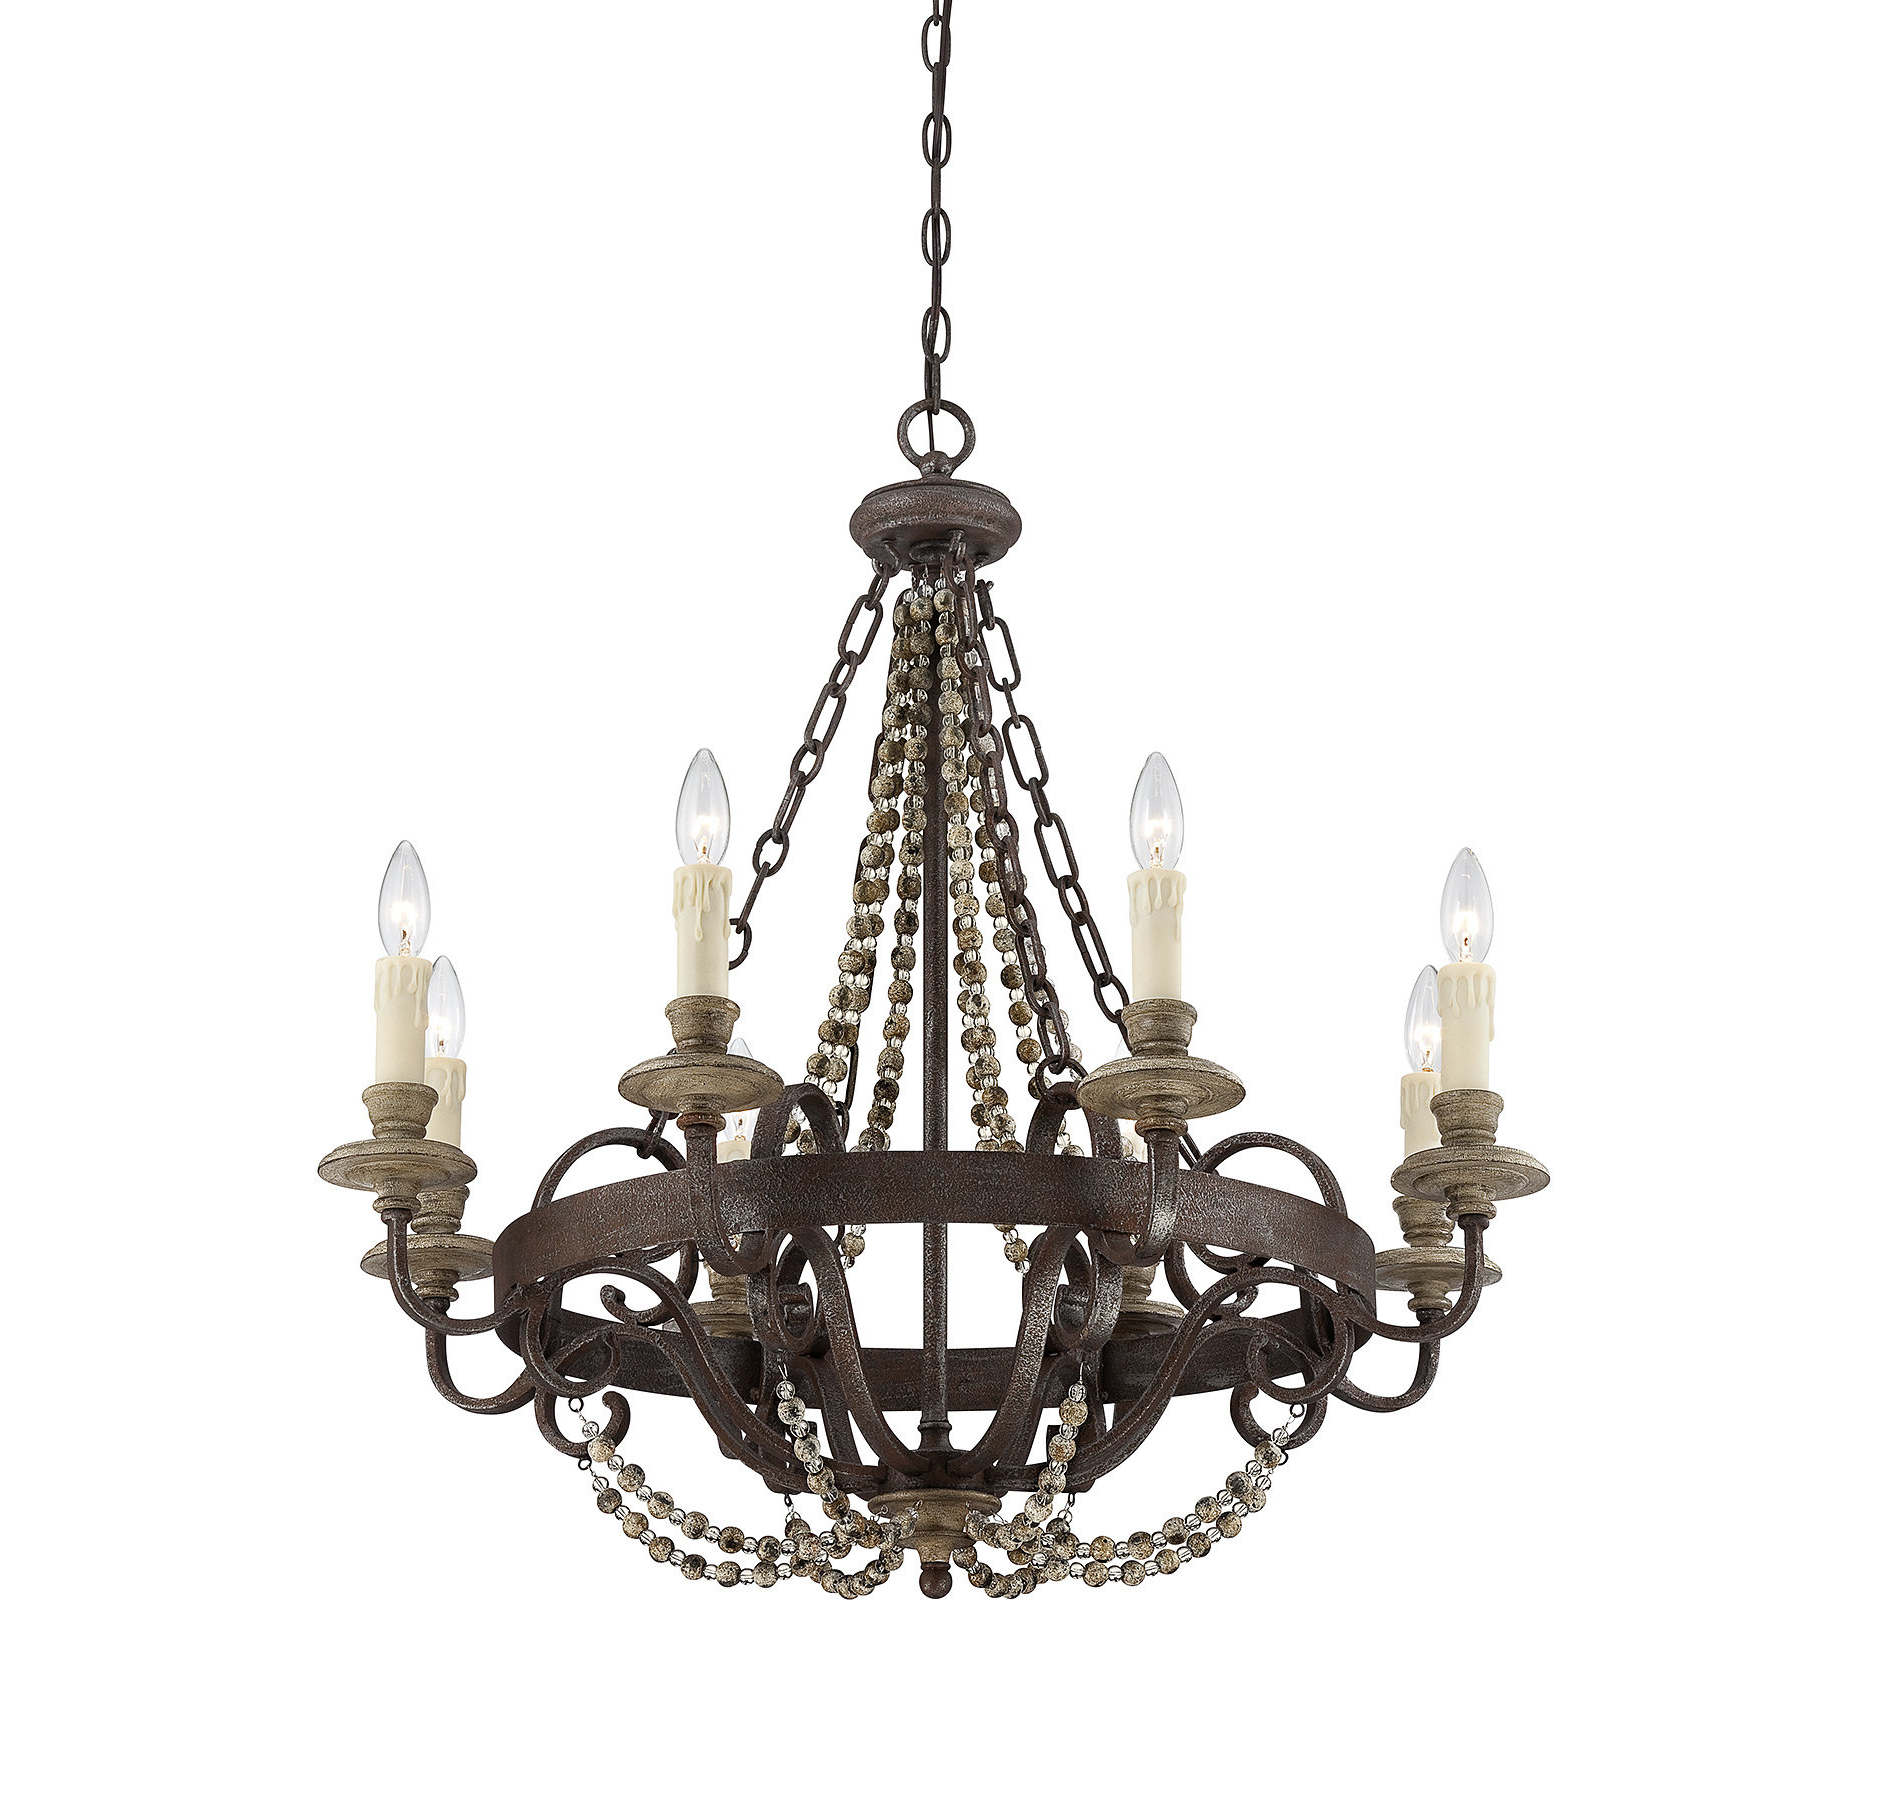 Joss & Main Intended For Duron 5 Light Empire Chandeliers (View 14 of 25)